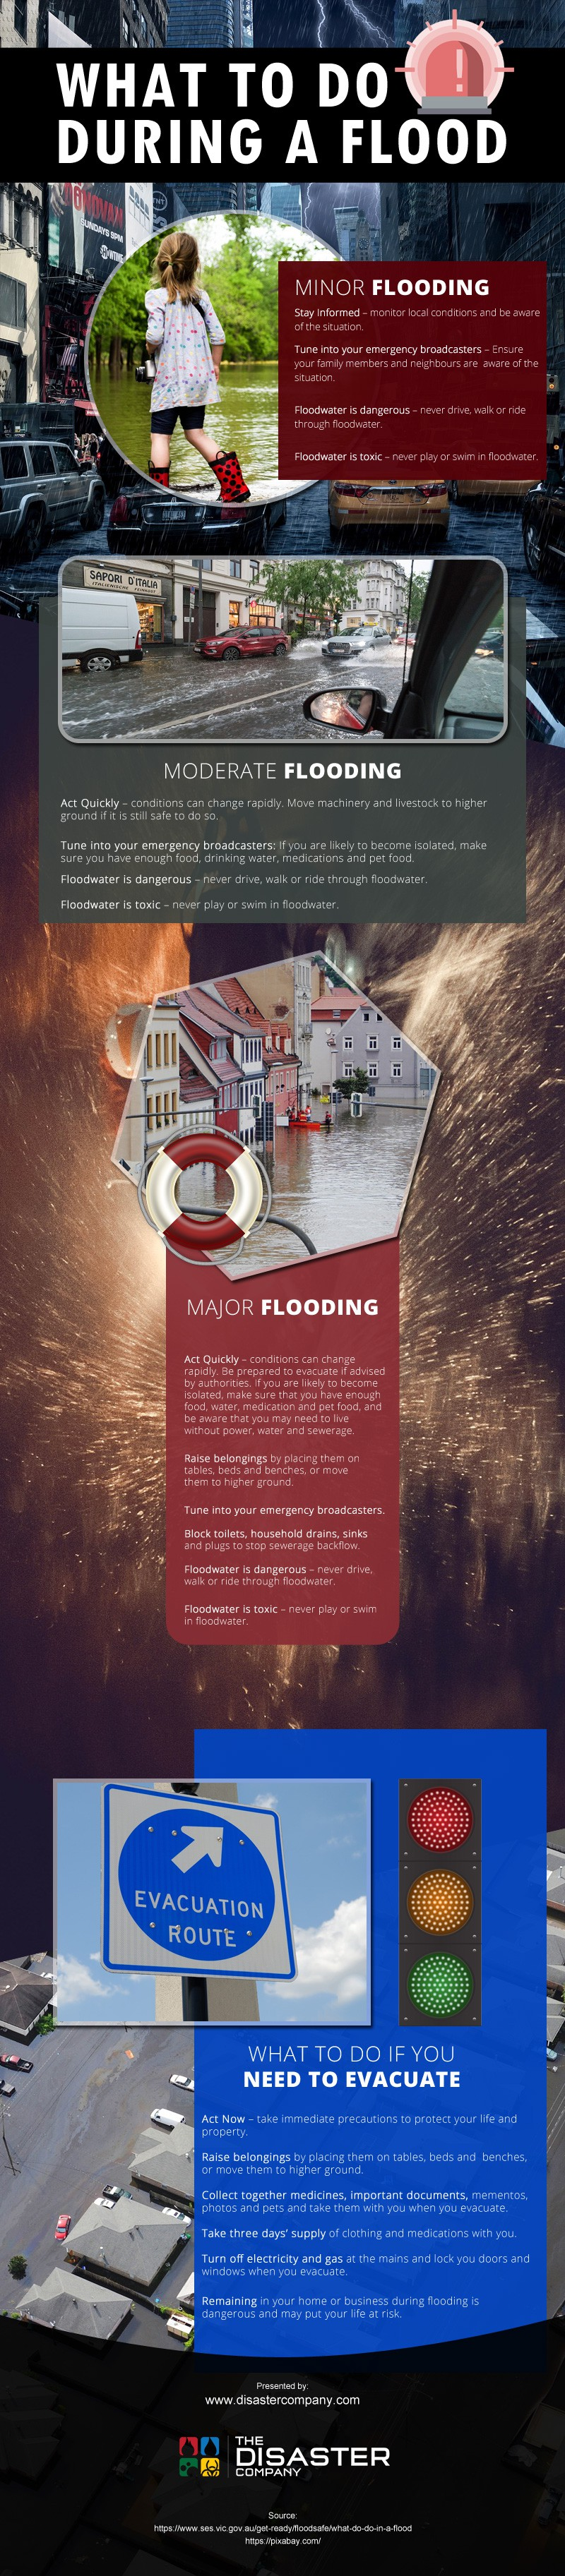 What-to-Do-During-a-Flood Infographic